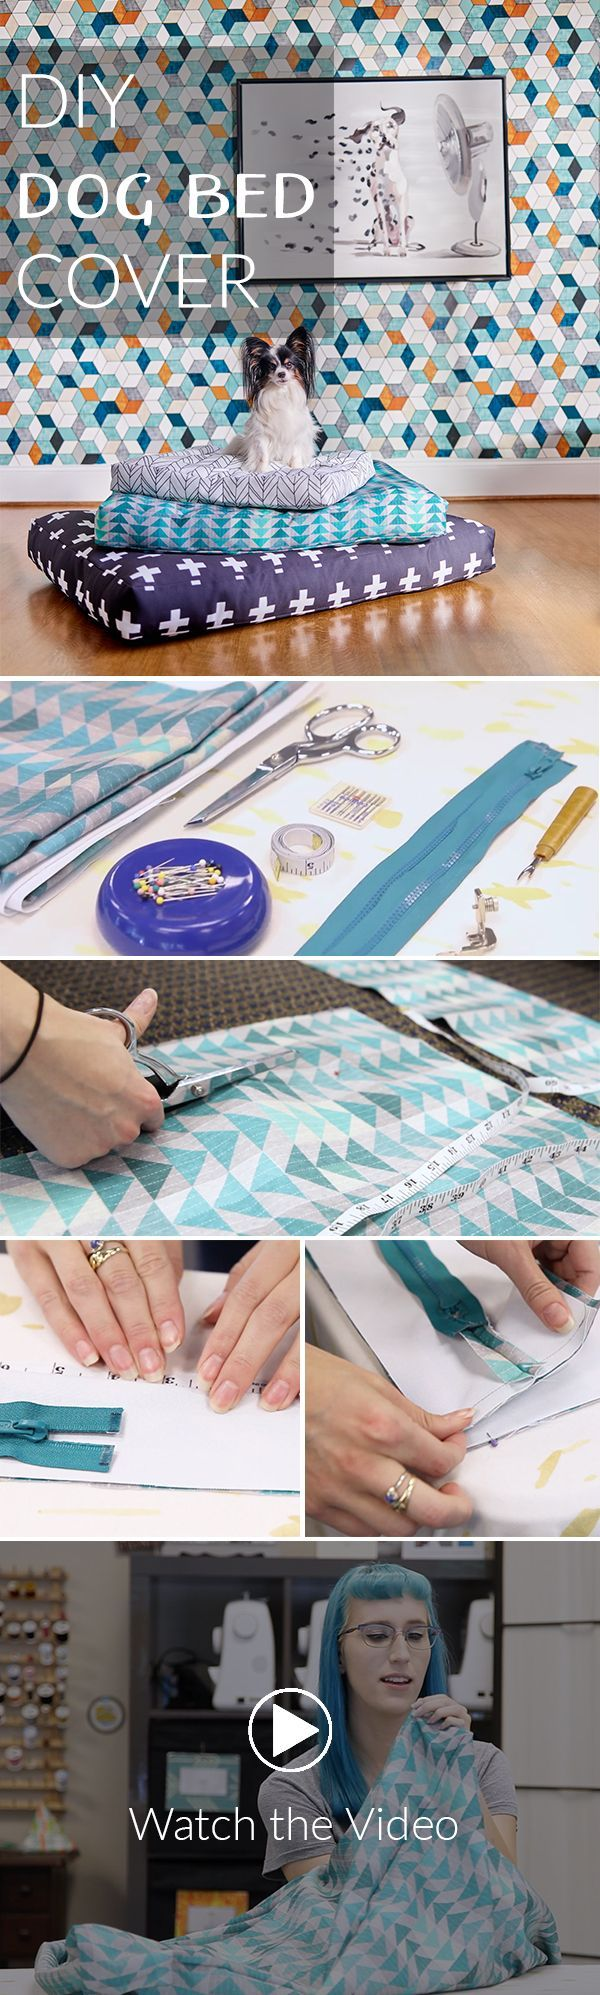 Totally Customizable DIY Dog Bed Cover | Video Tutorial - Make your own easy DIY Customizable Dog Bed for your pooch.  Click to see the easy sewing steps.